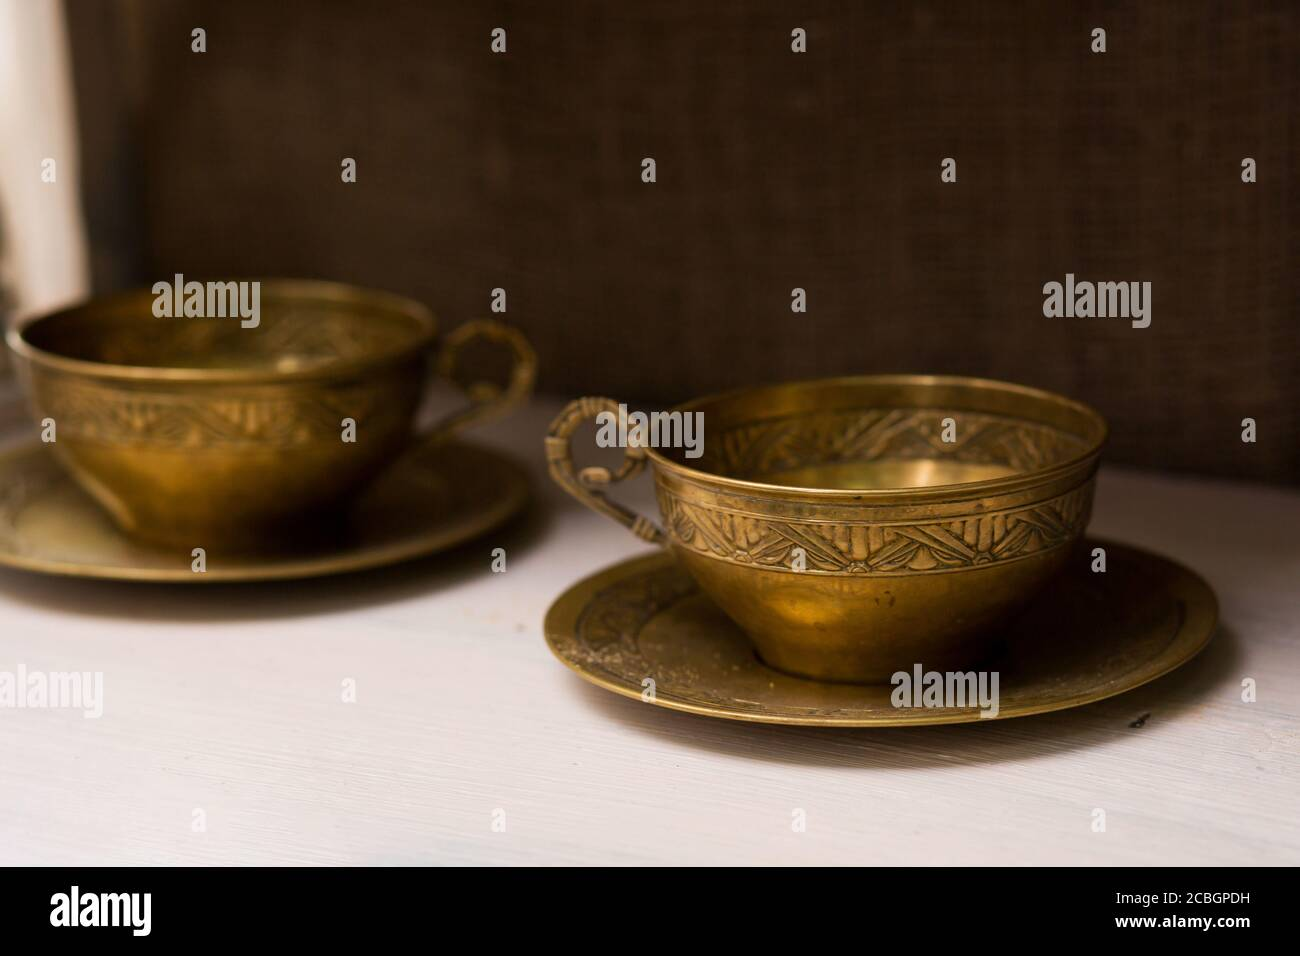 Antique Tea Mugs With Copper Saucers Unusual Home Decor Items Stock Photo Alamy